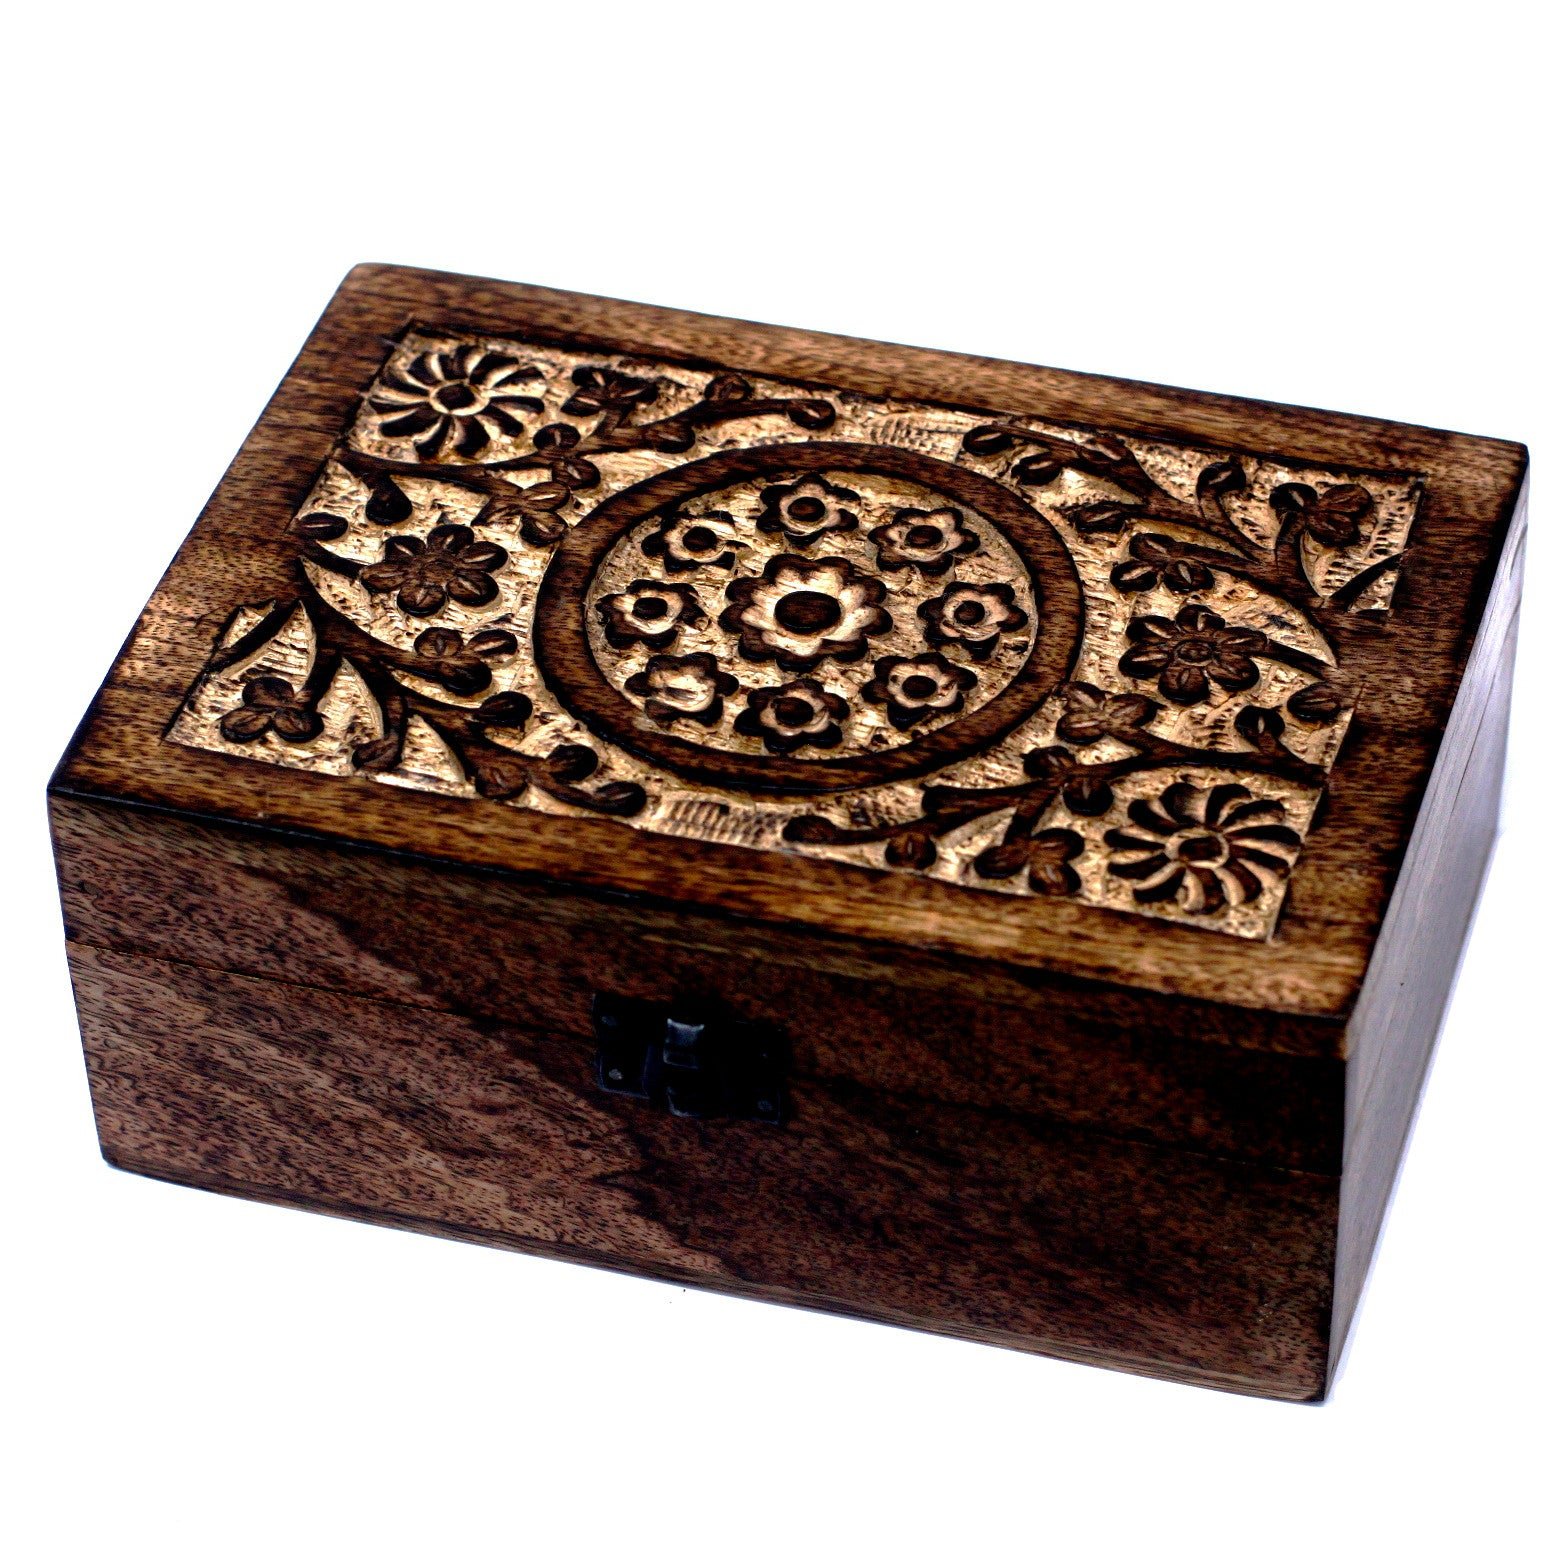 Large Mango Essential Oil Box - Floral Design (holds 24)